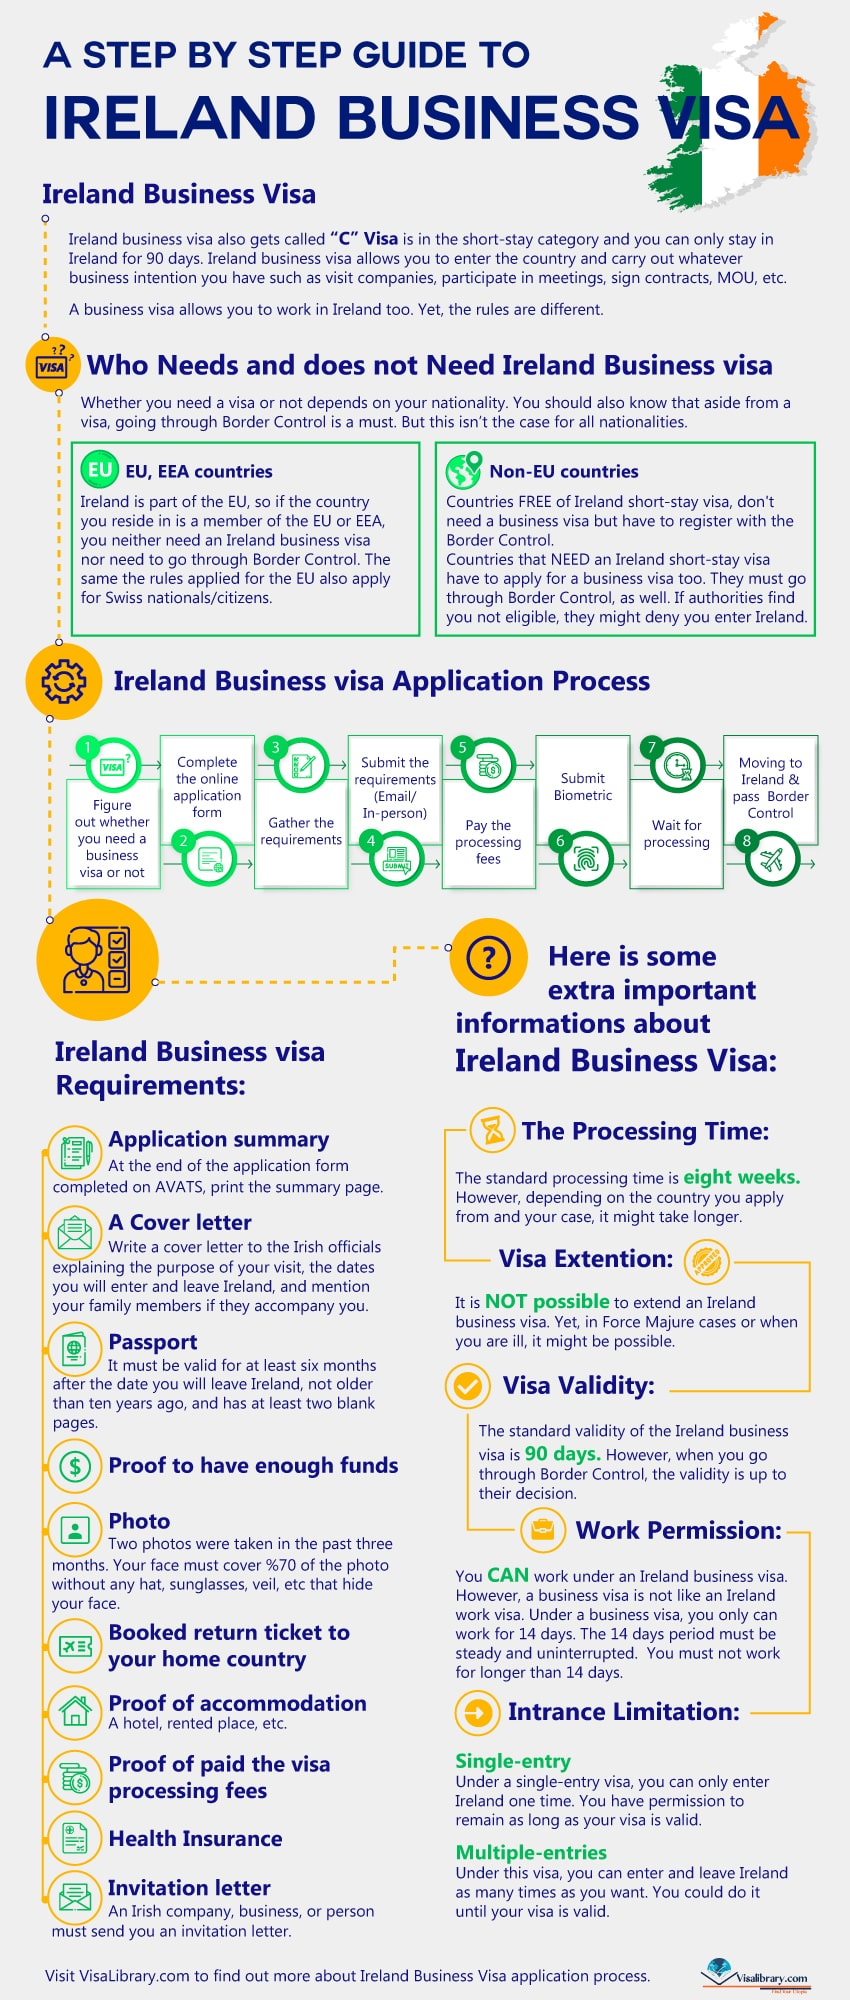 A Step by Step Guide to Ireland Business visa